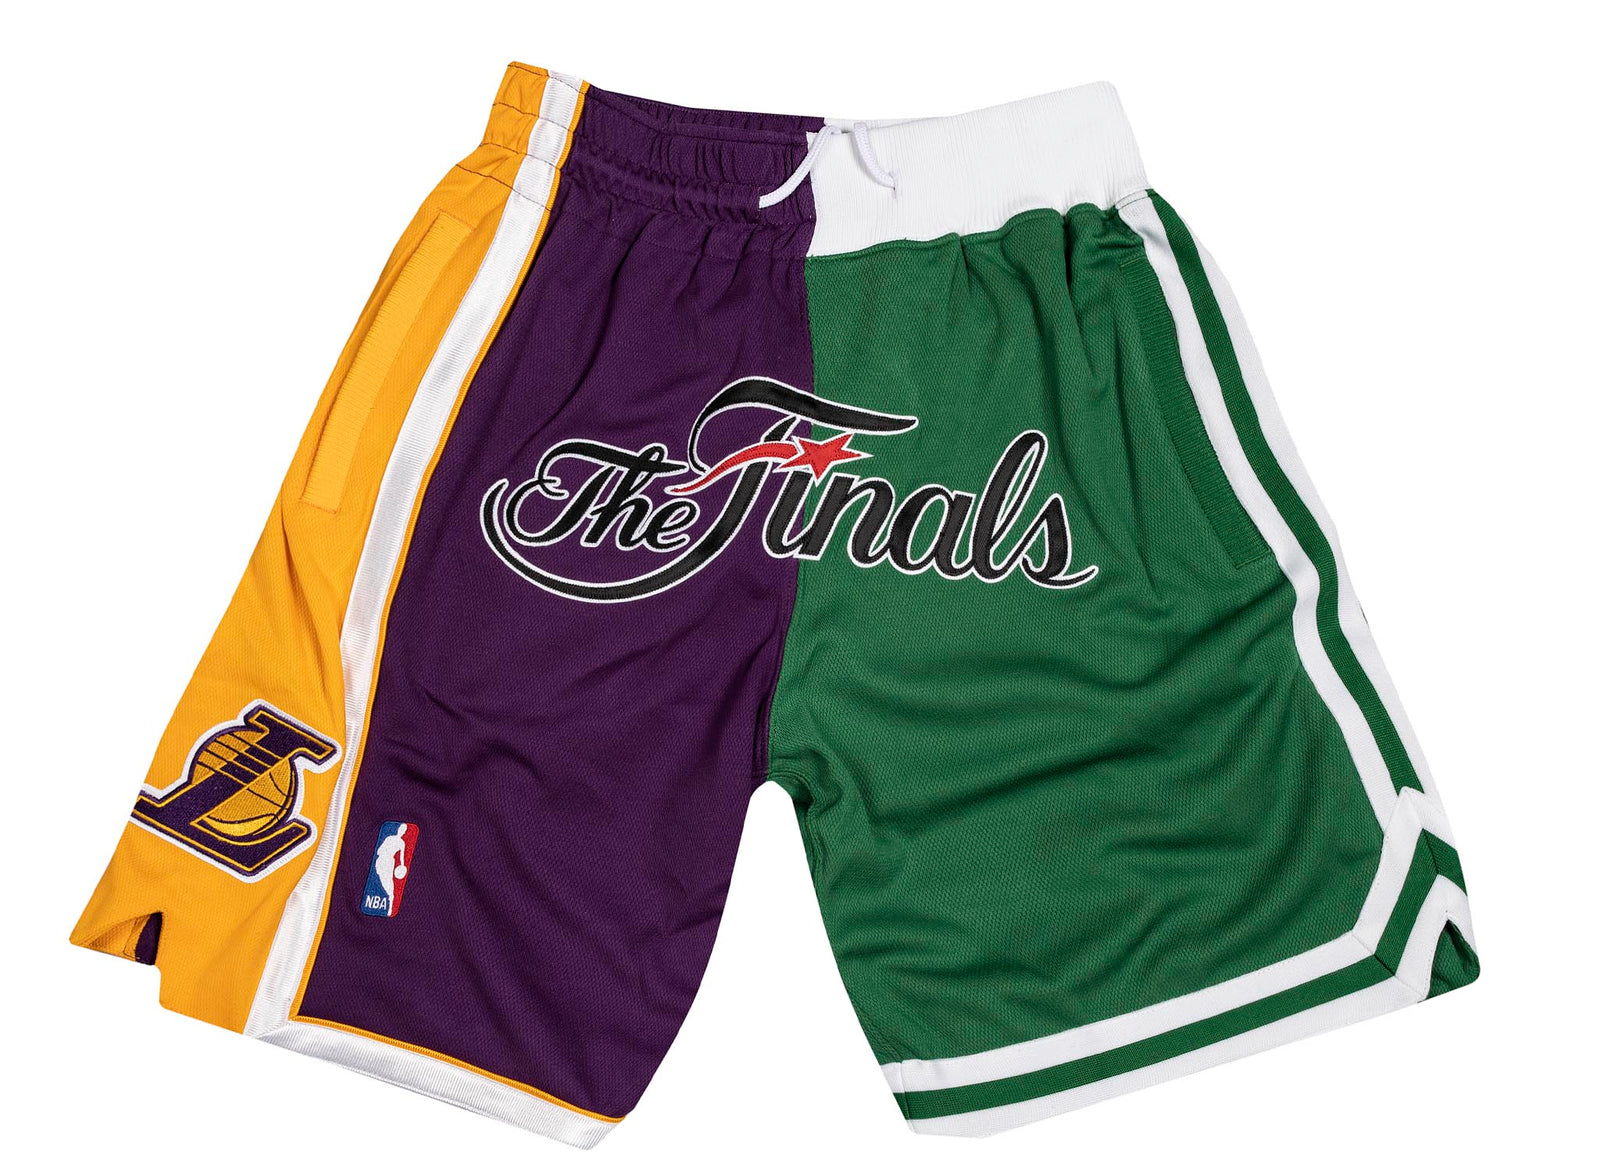 056c70fb690 Mitchell and Ness x JUST DON NBA FINALS LAKERS CELTICS 2008